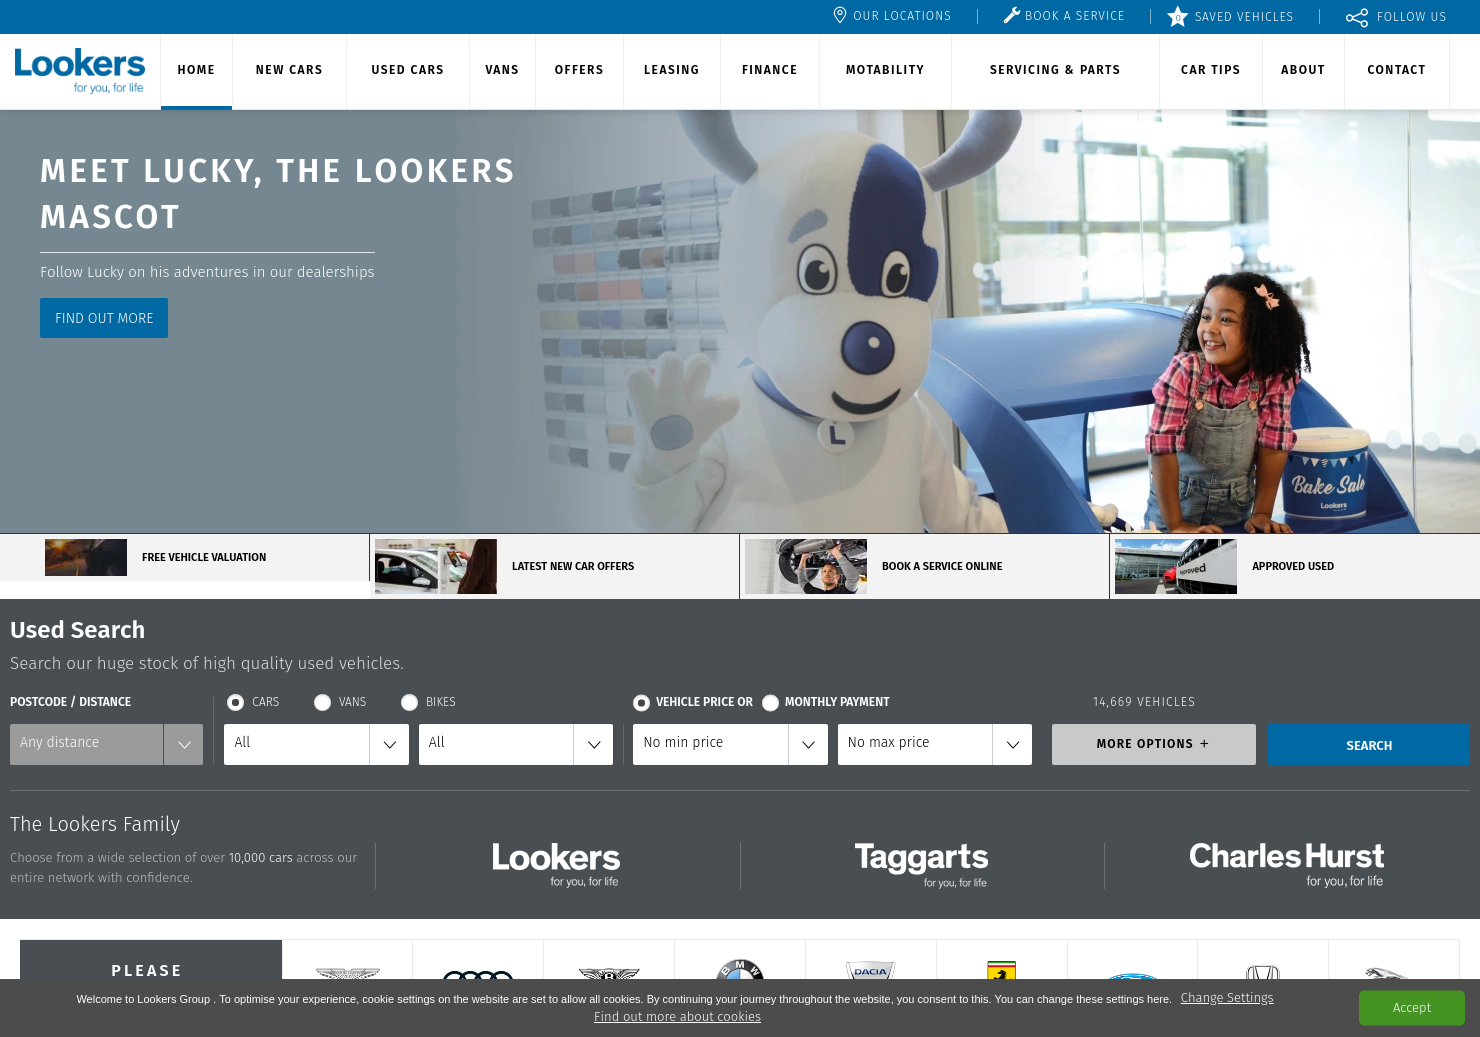 Lookers Home Page